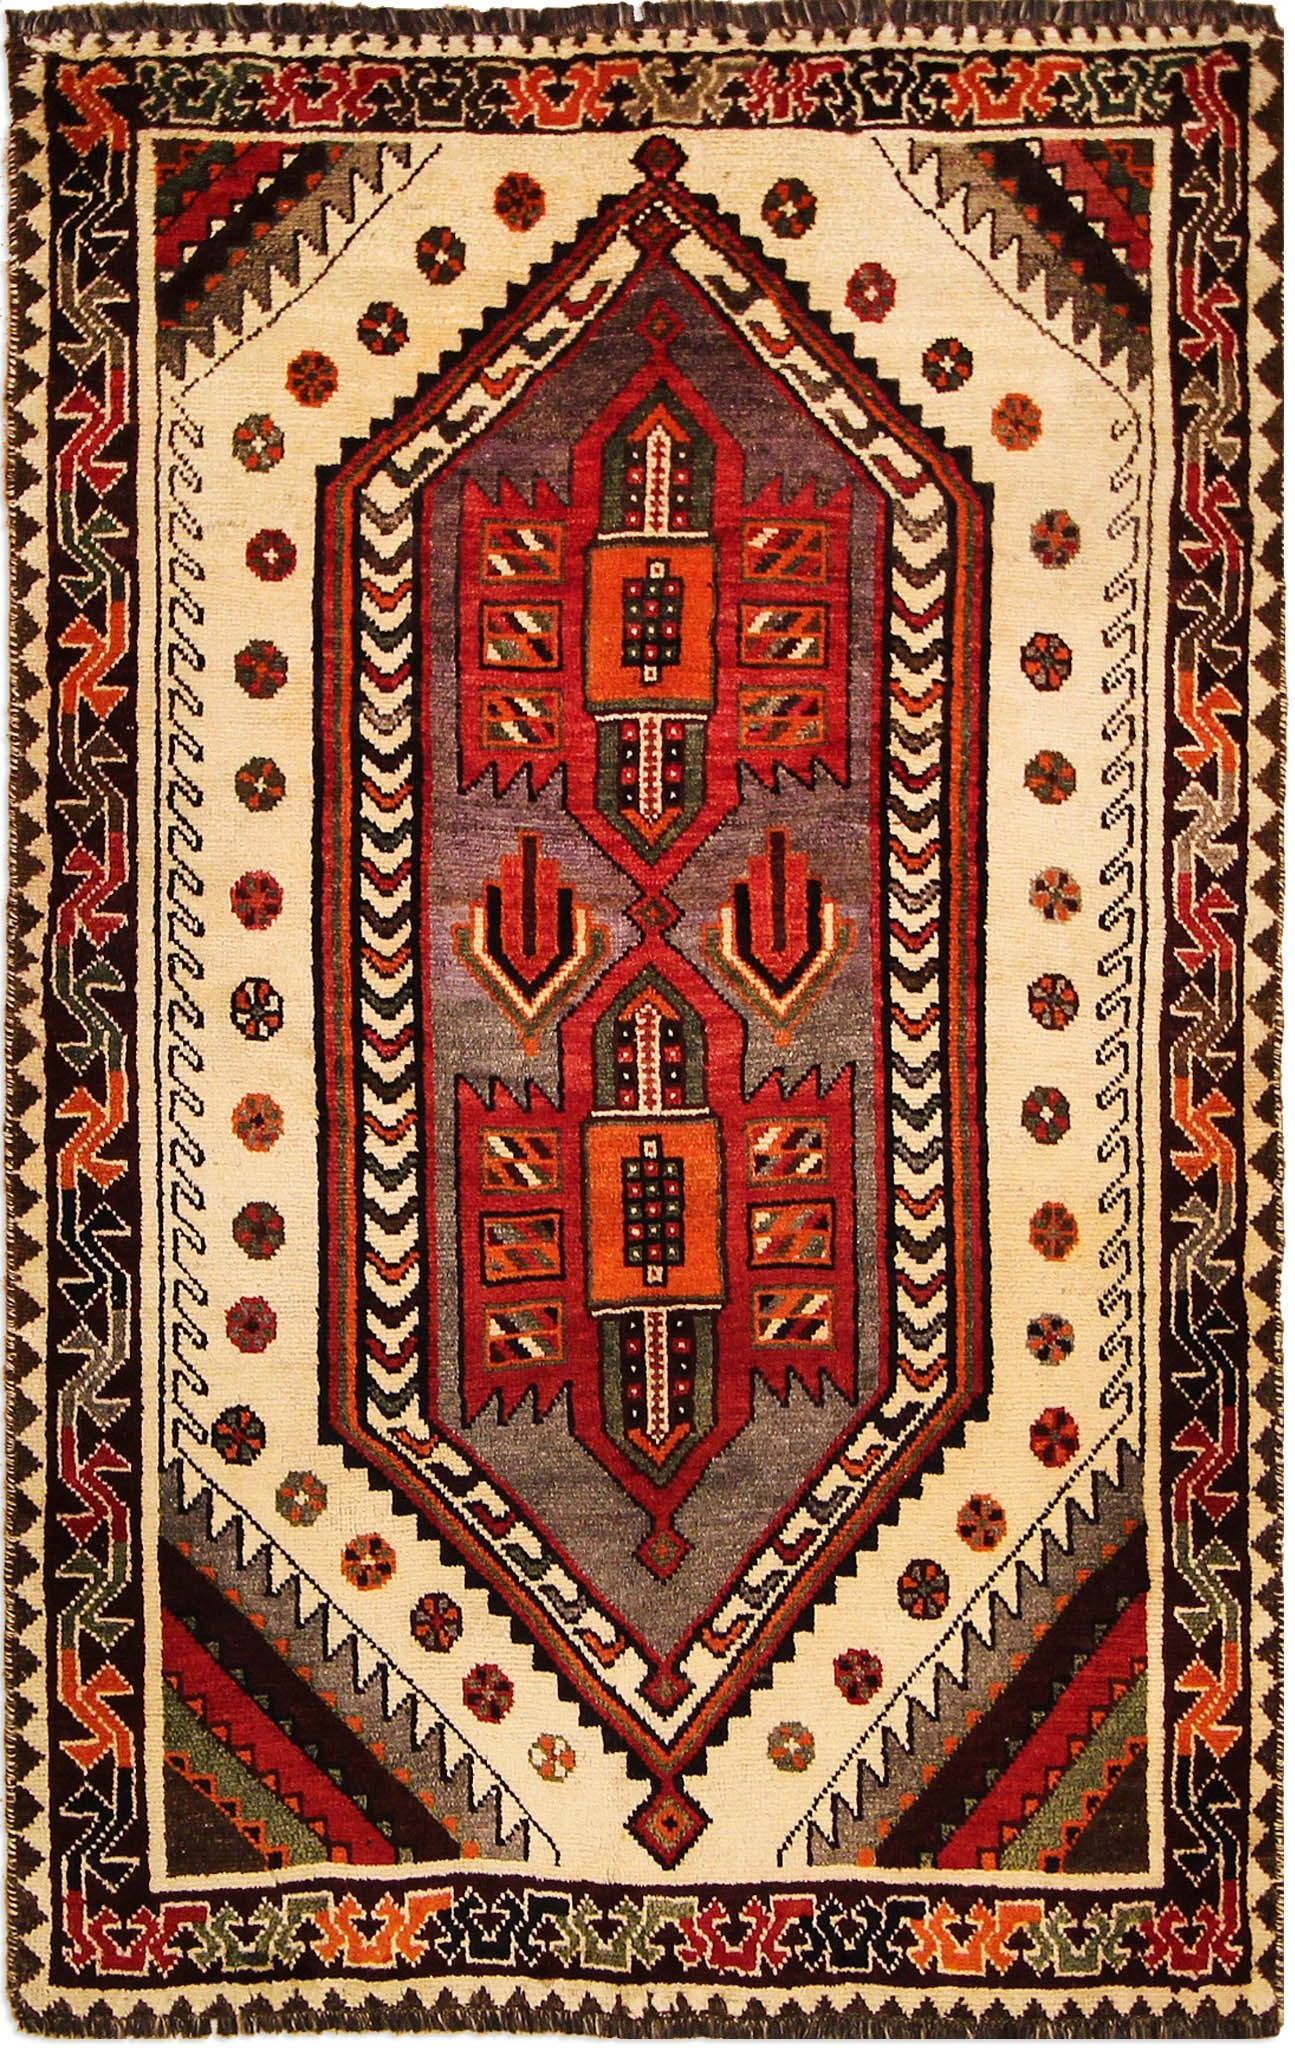 Shiraz Traditional Carpet 208 X 131 Cm682 X 43 Ft Throughout Traditional Carpets (Image 6 of 15)